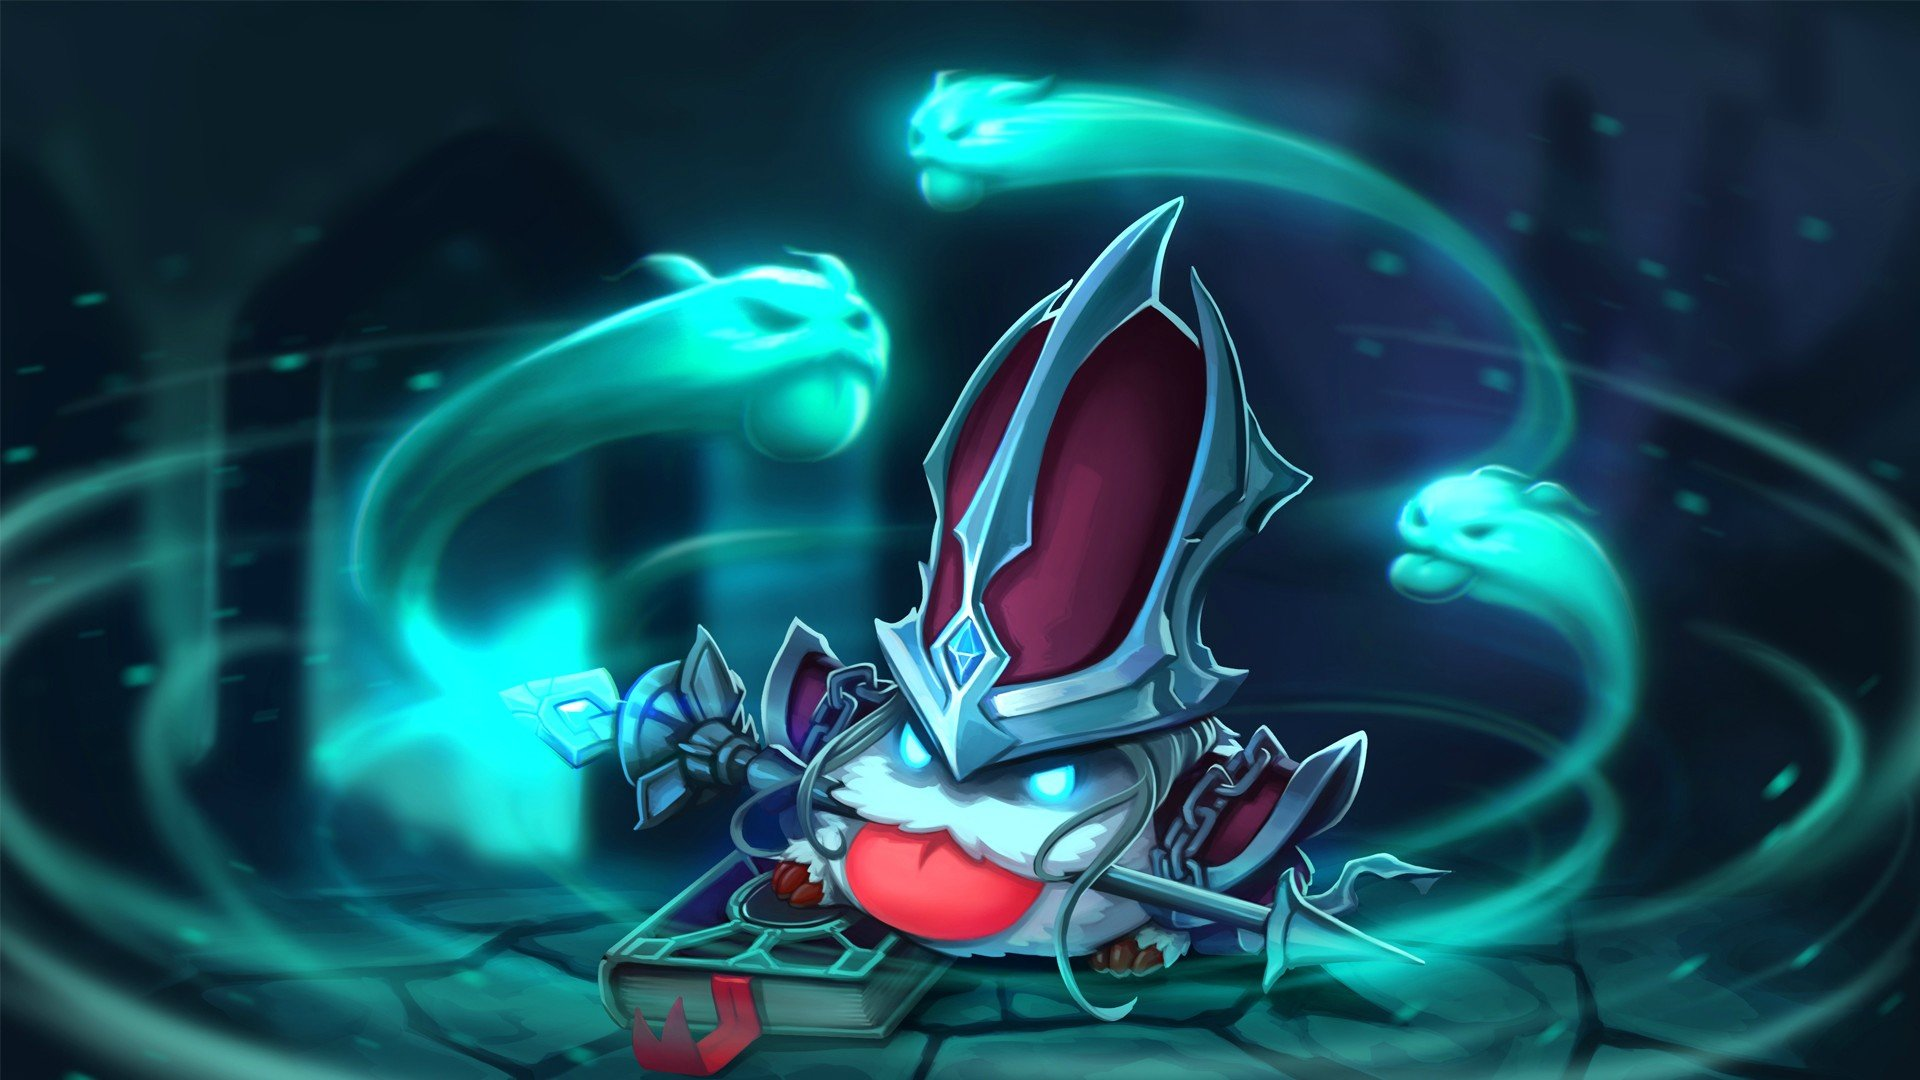 Poro League Of Legends Wallpapers 1920x1080 Full Hd 1080p